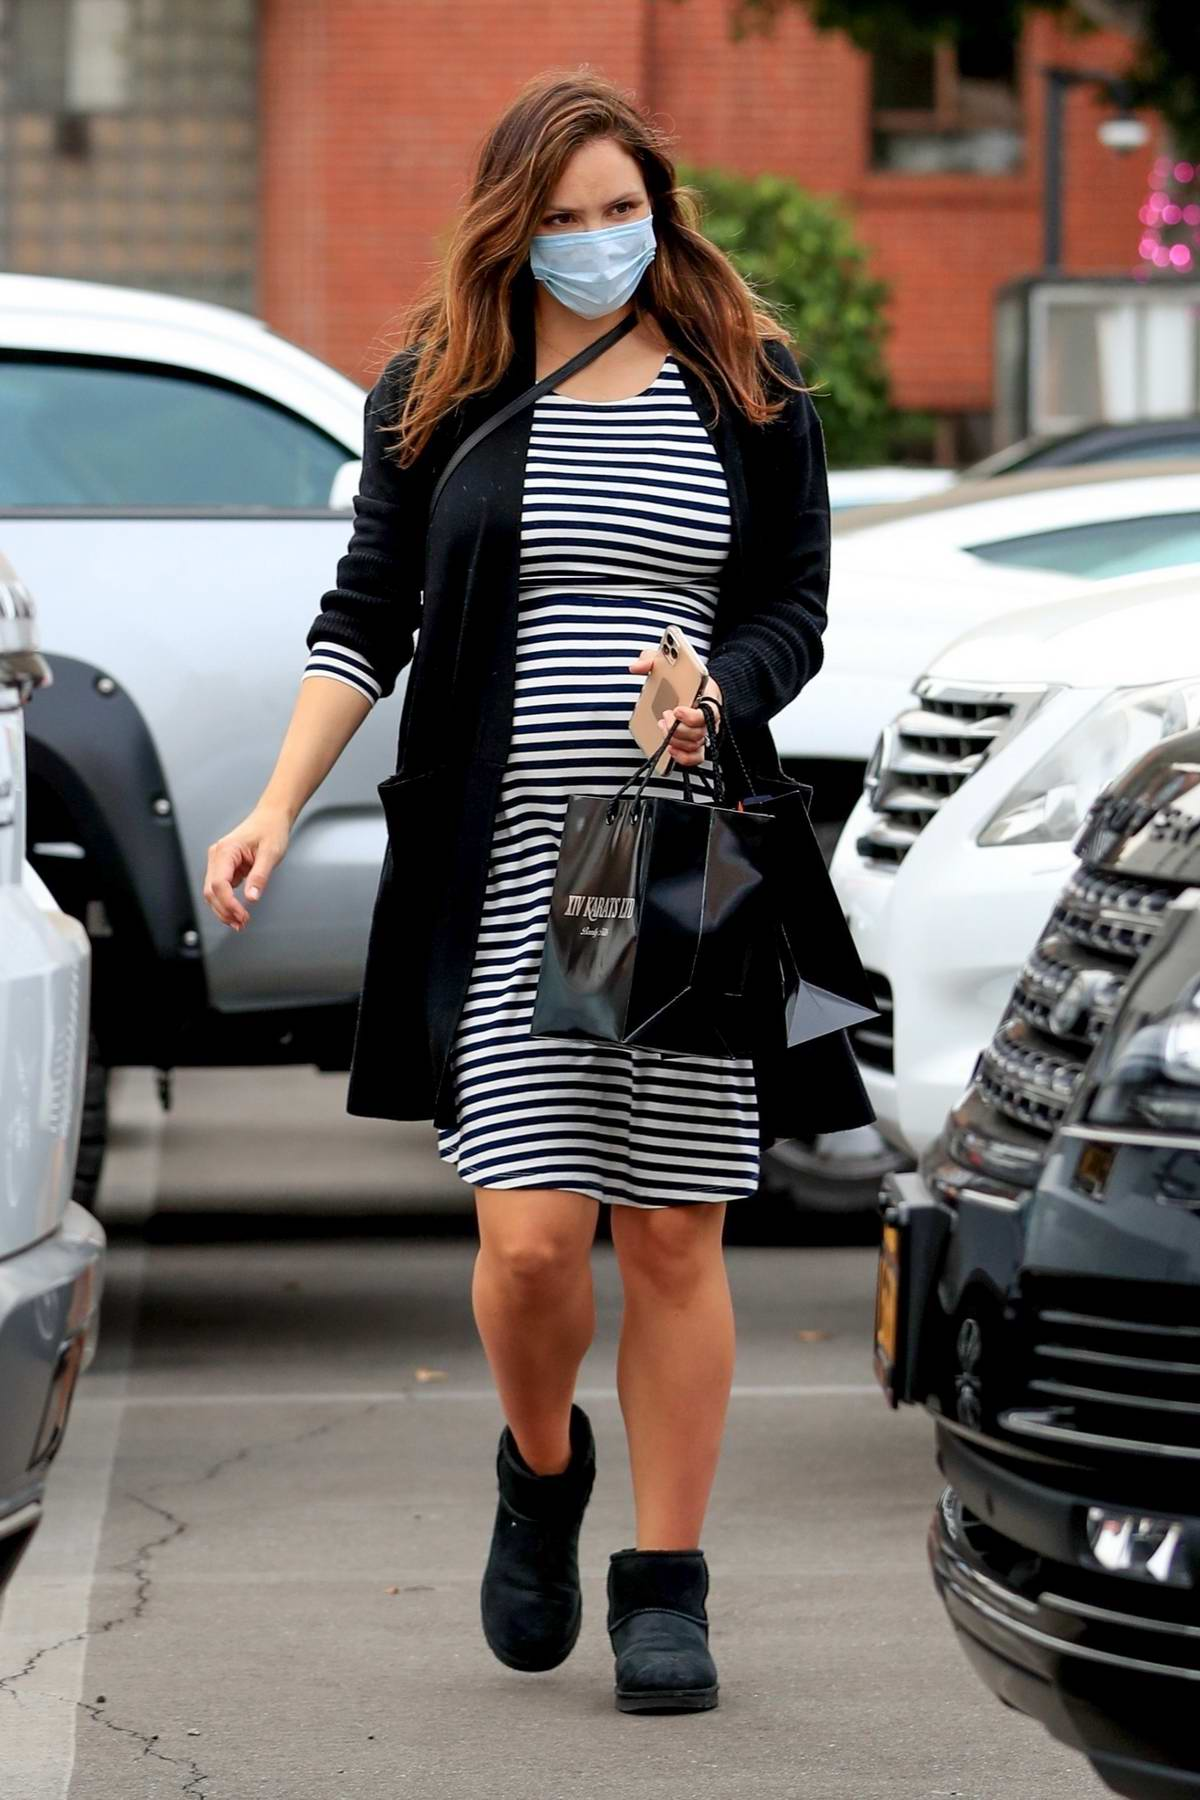 Katharine McPhee looks great in a striped dress while out for some jewelry shopping at XIV Karats in Beverly Hills, California